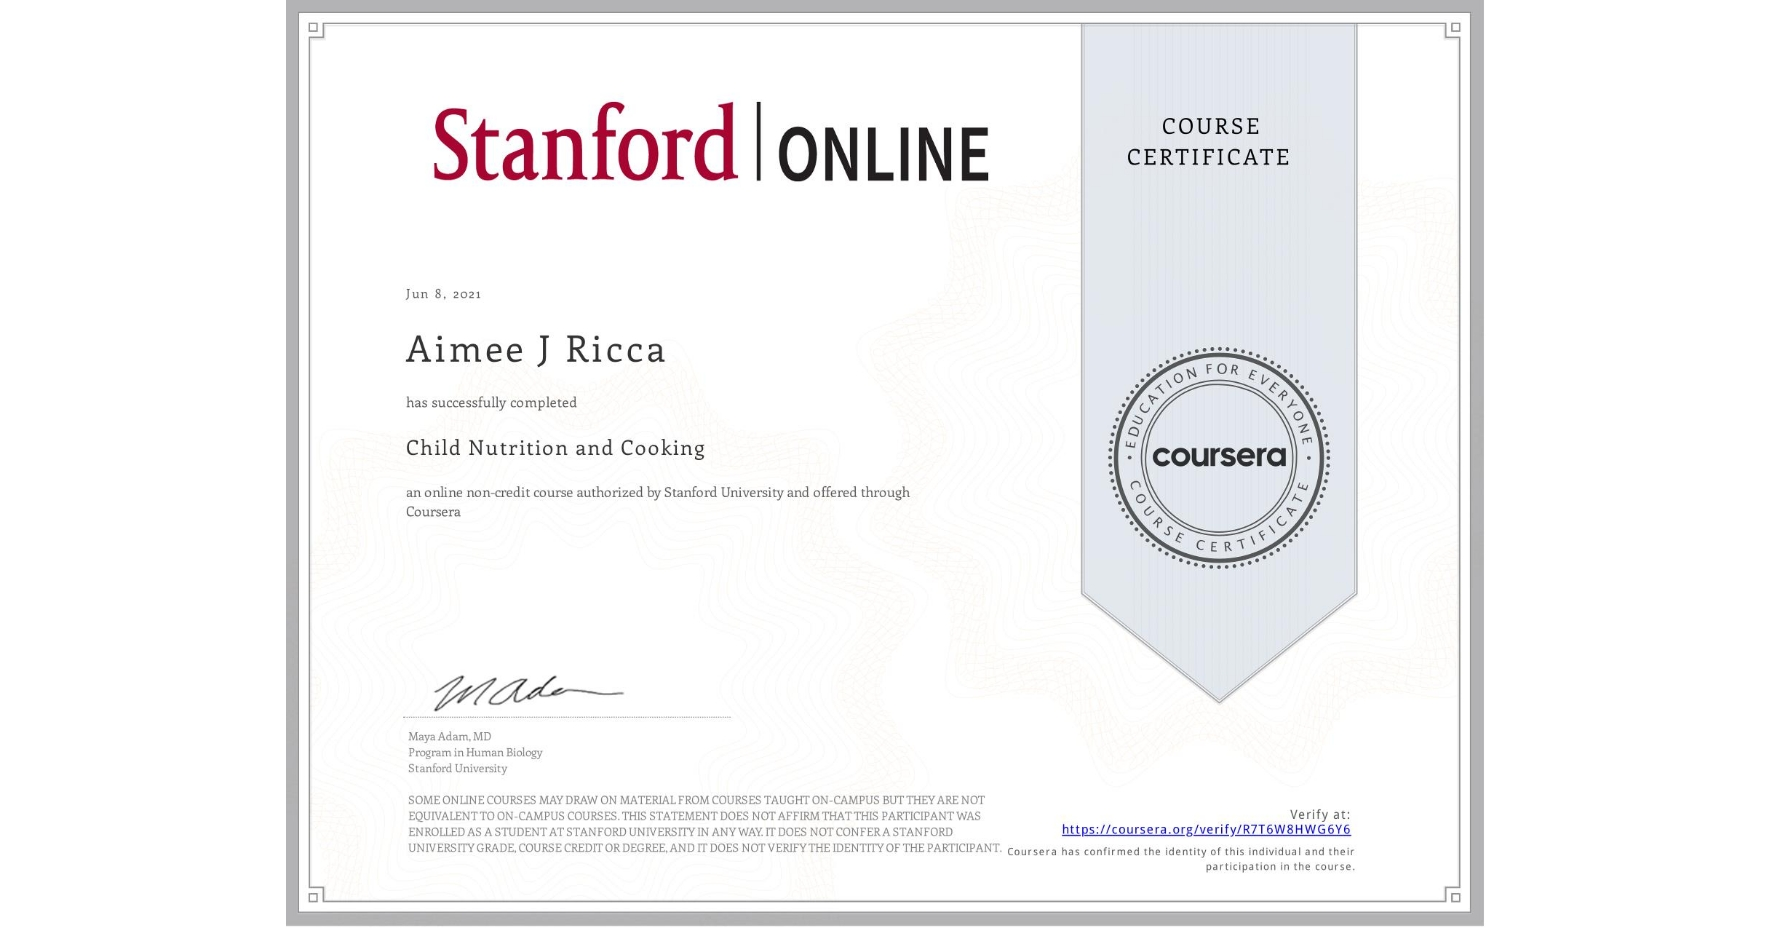 View certificate for Aimee J Ricca, Child Nutrition and Cooking, an online non-credit course authorized by Stanford University and offered through Coursera